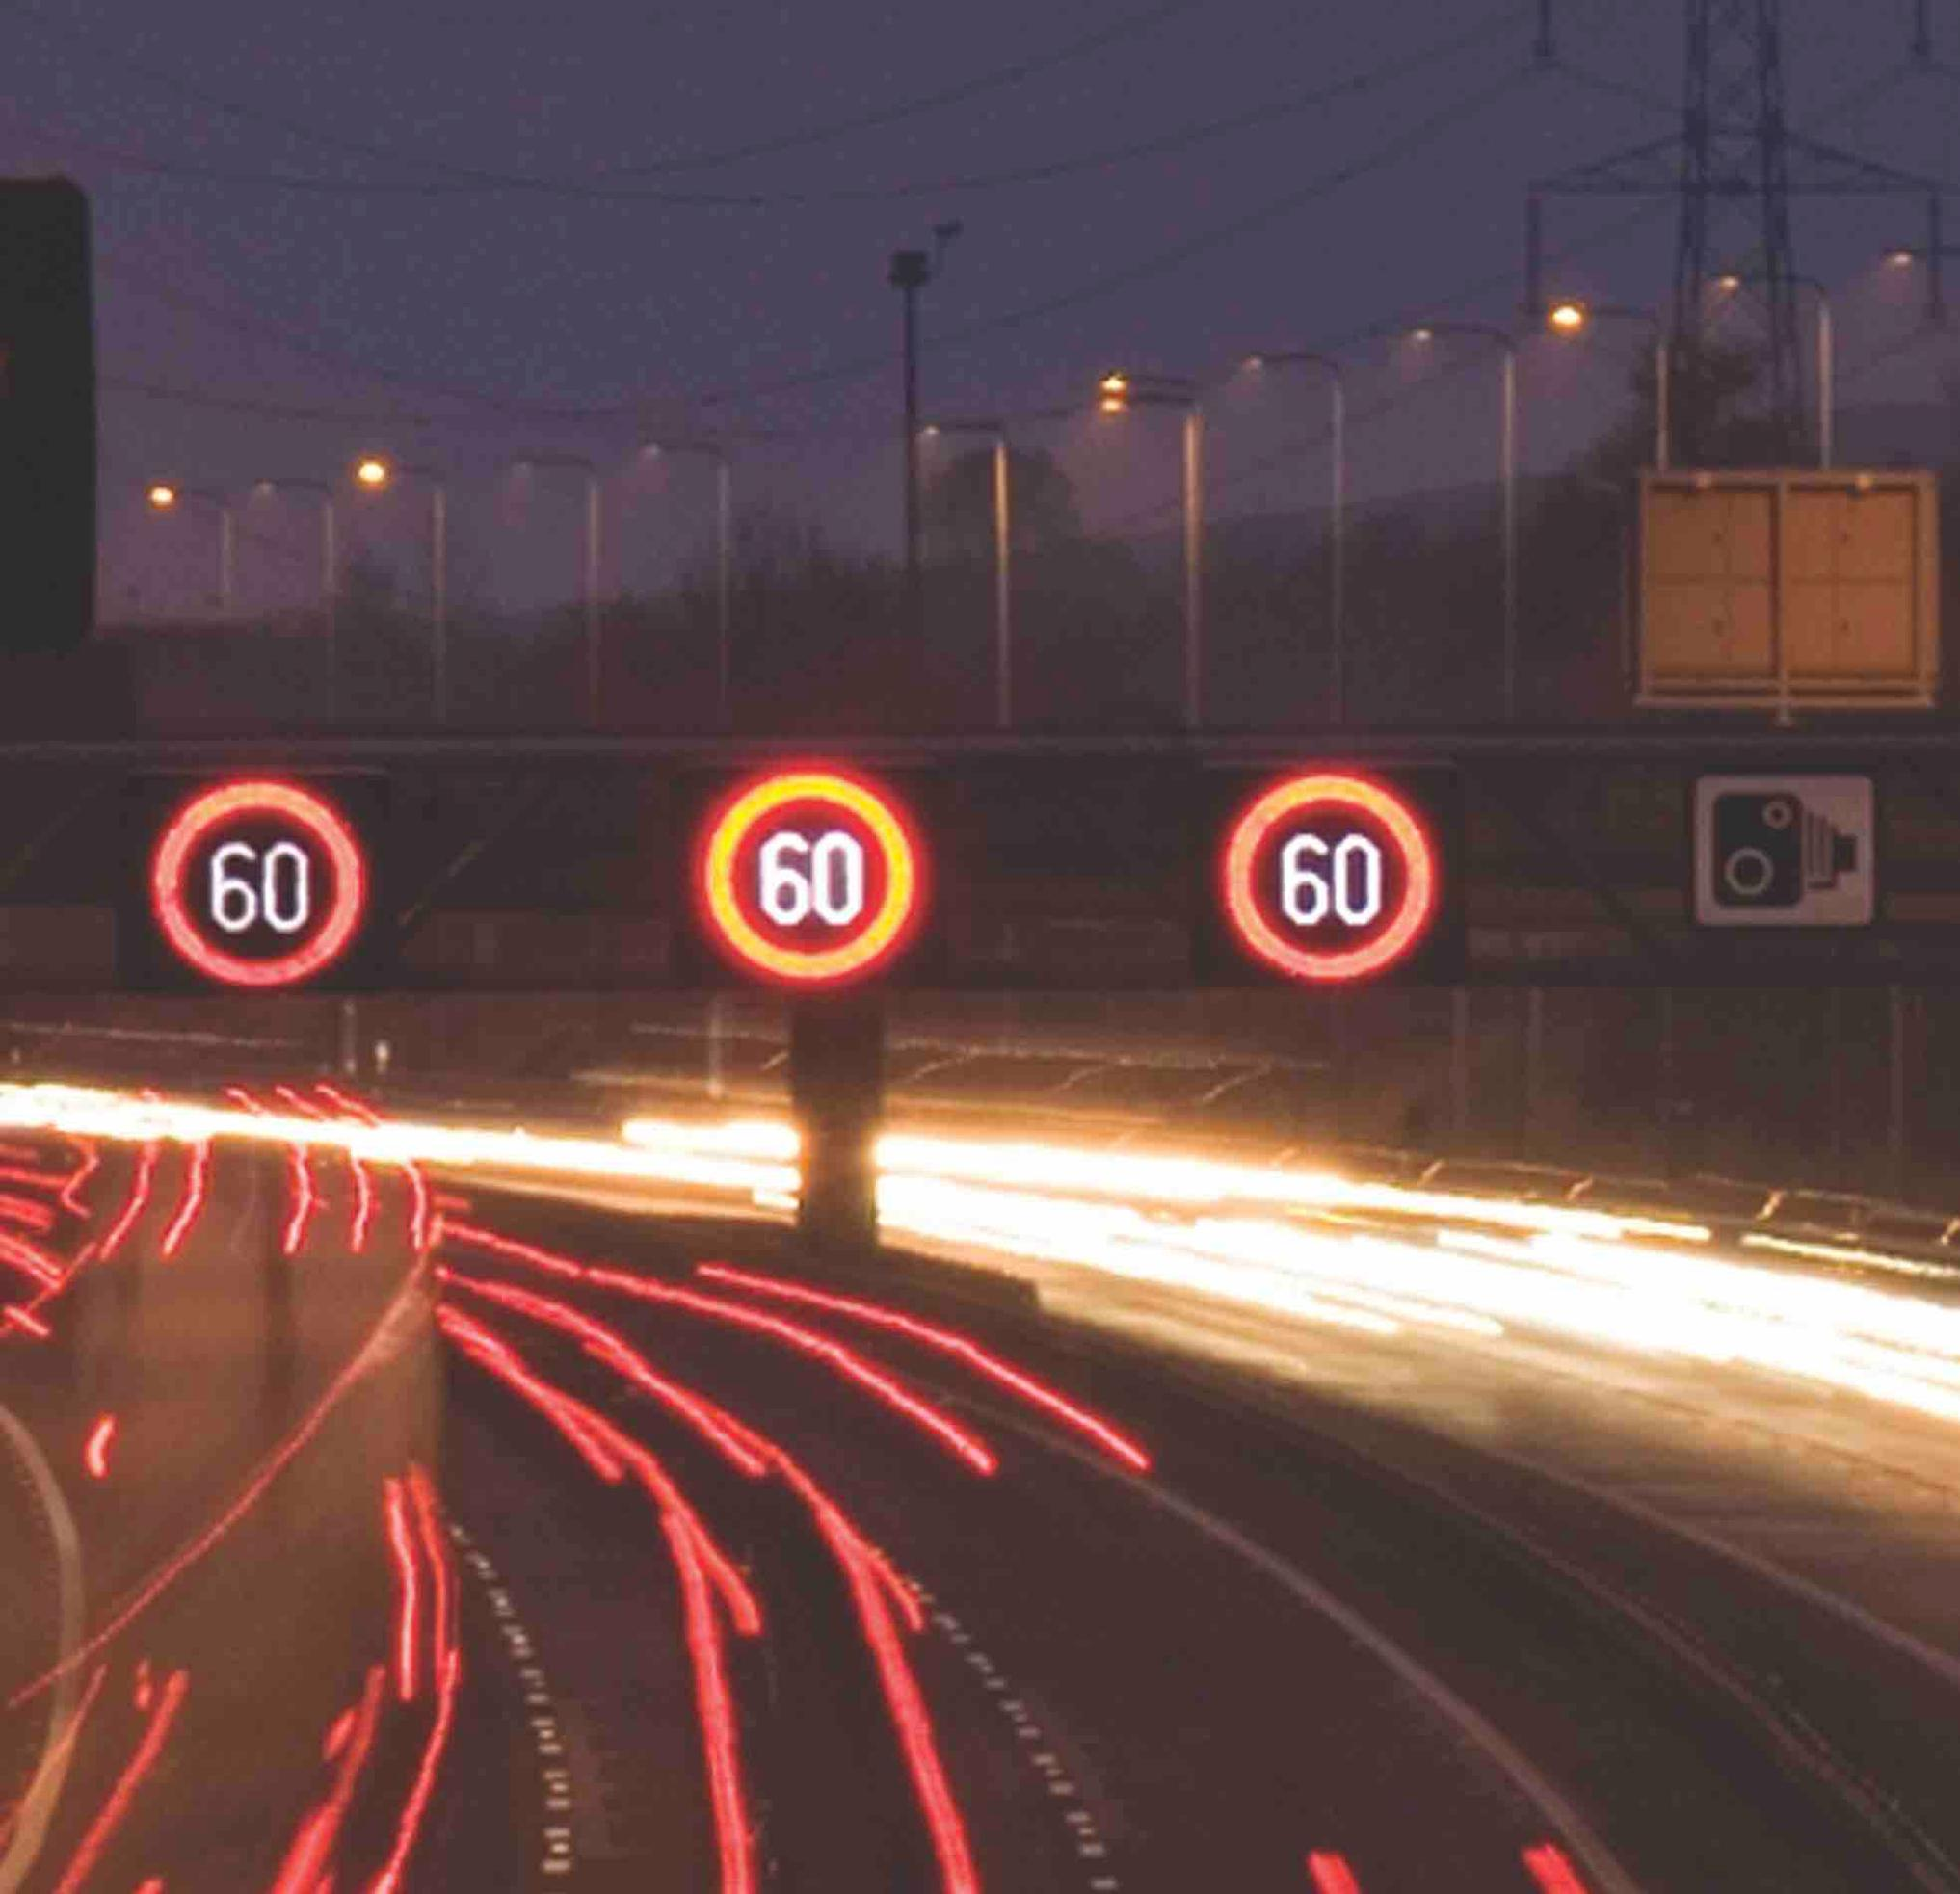 Lower speed limits for sections of motorway?